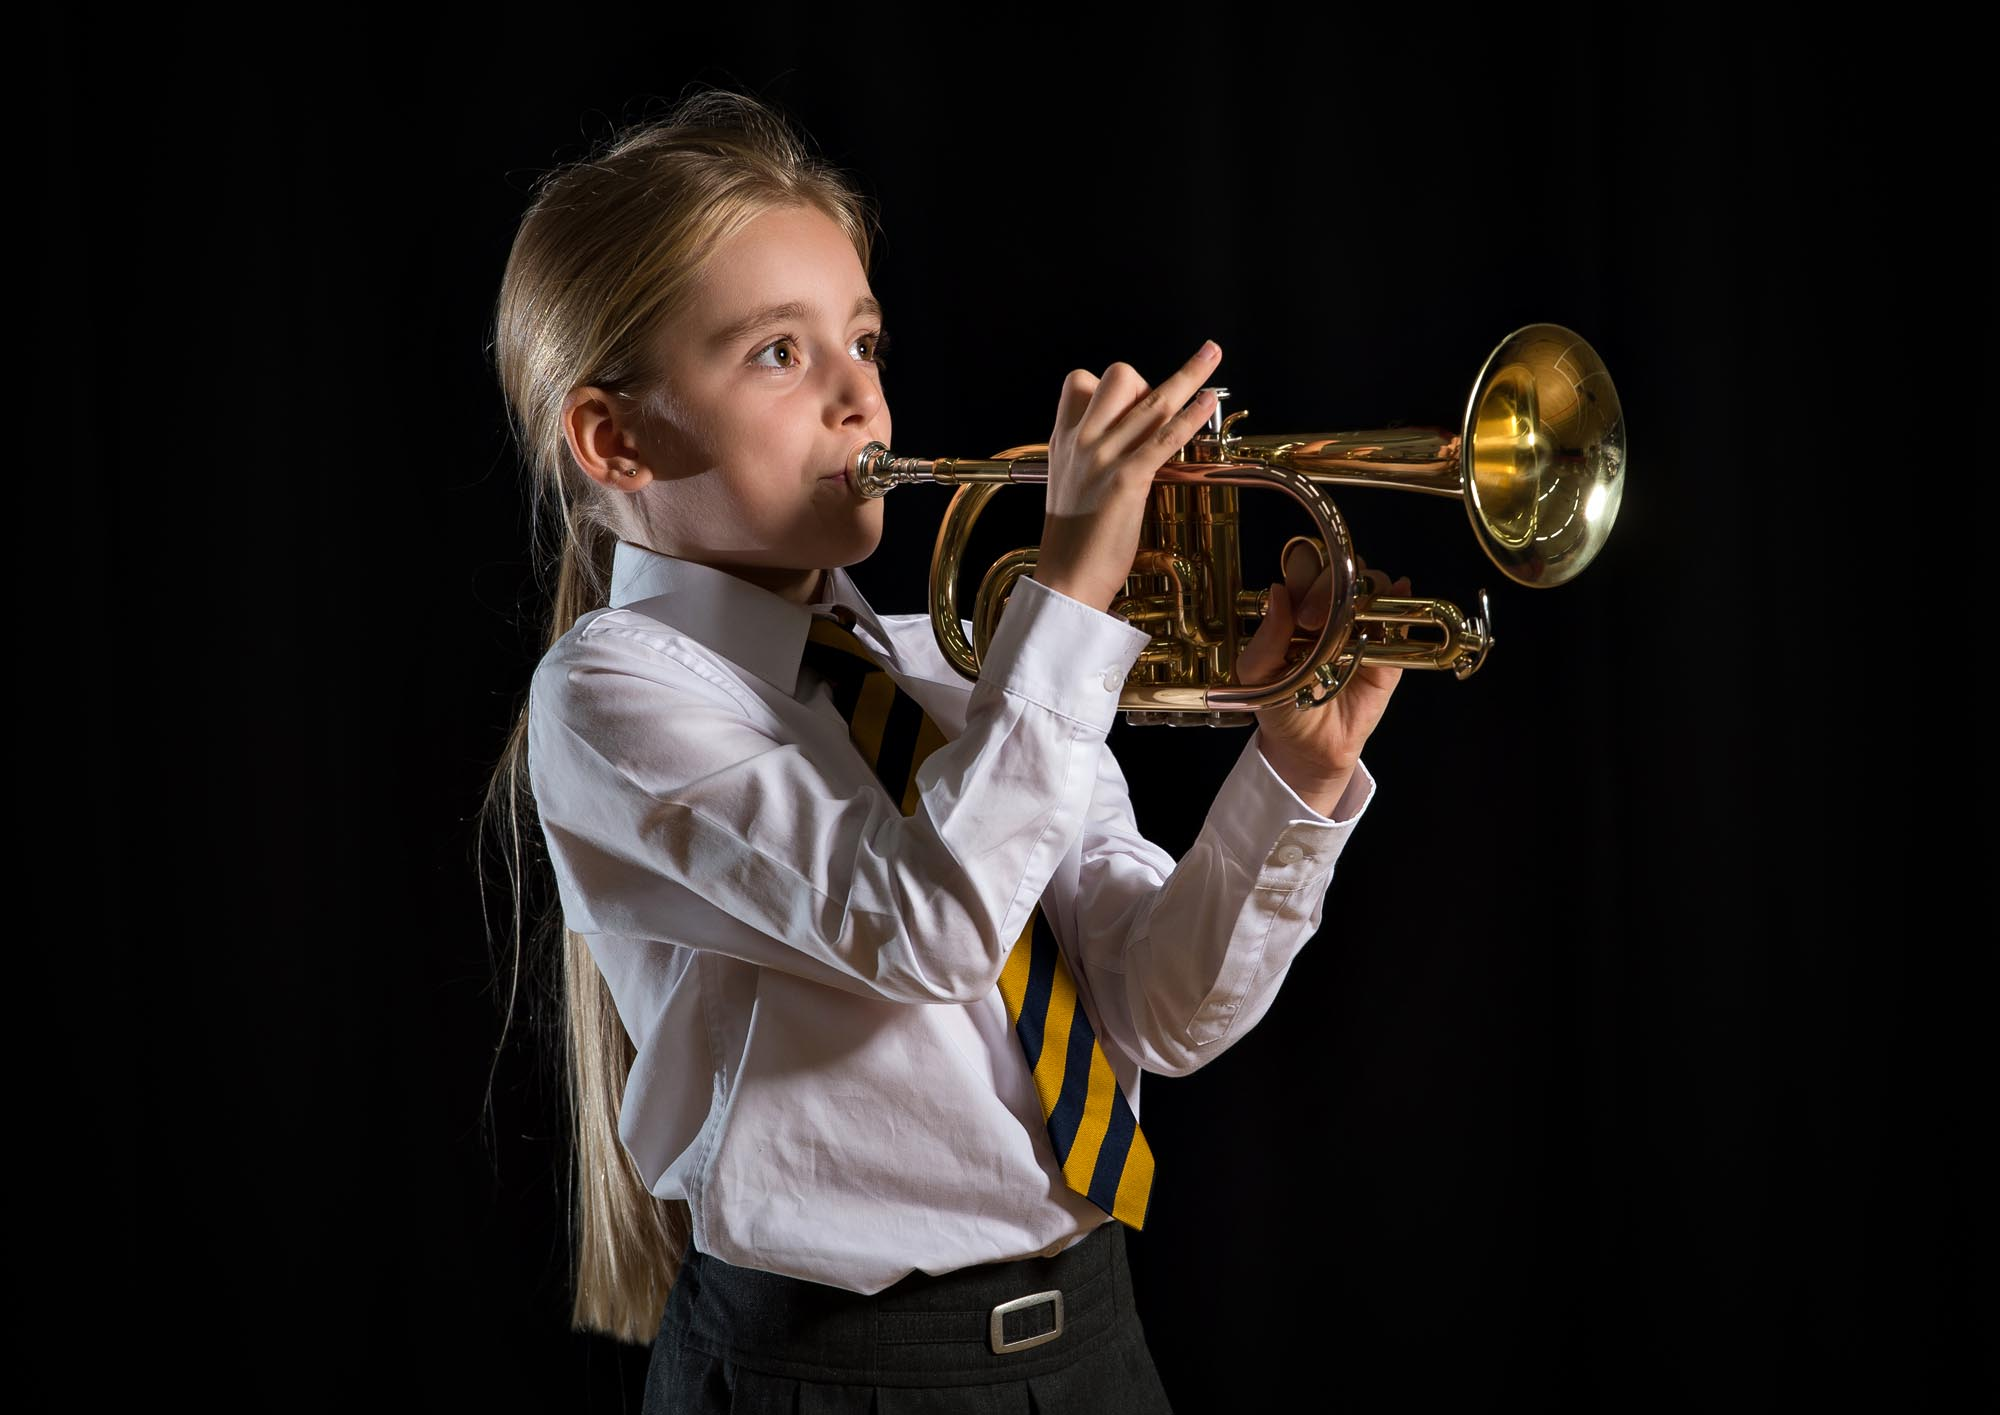 Girl playing cornet